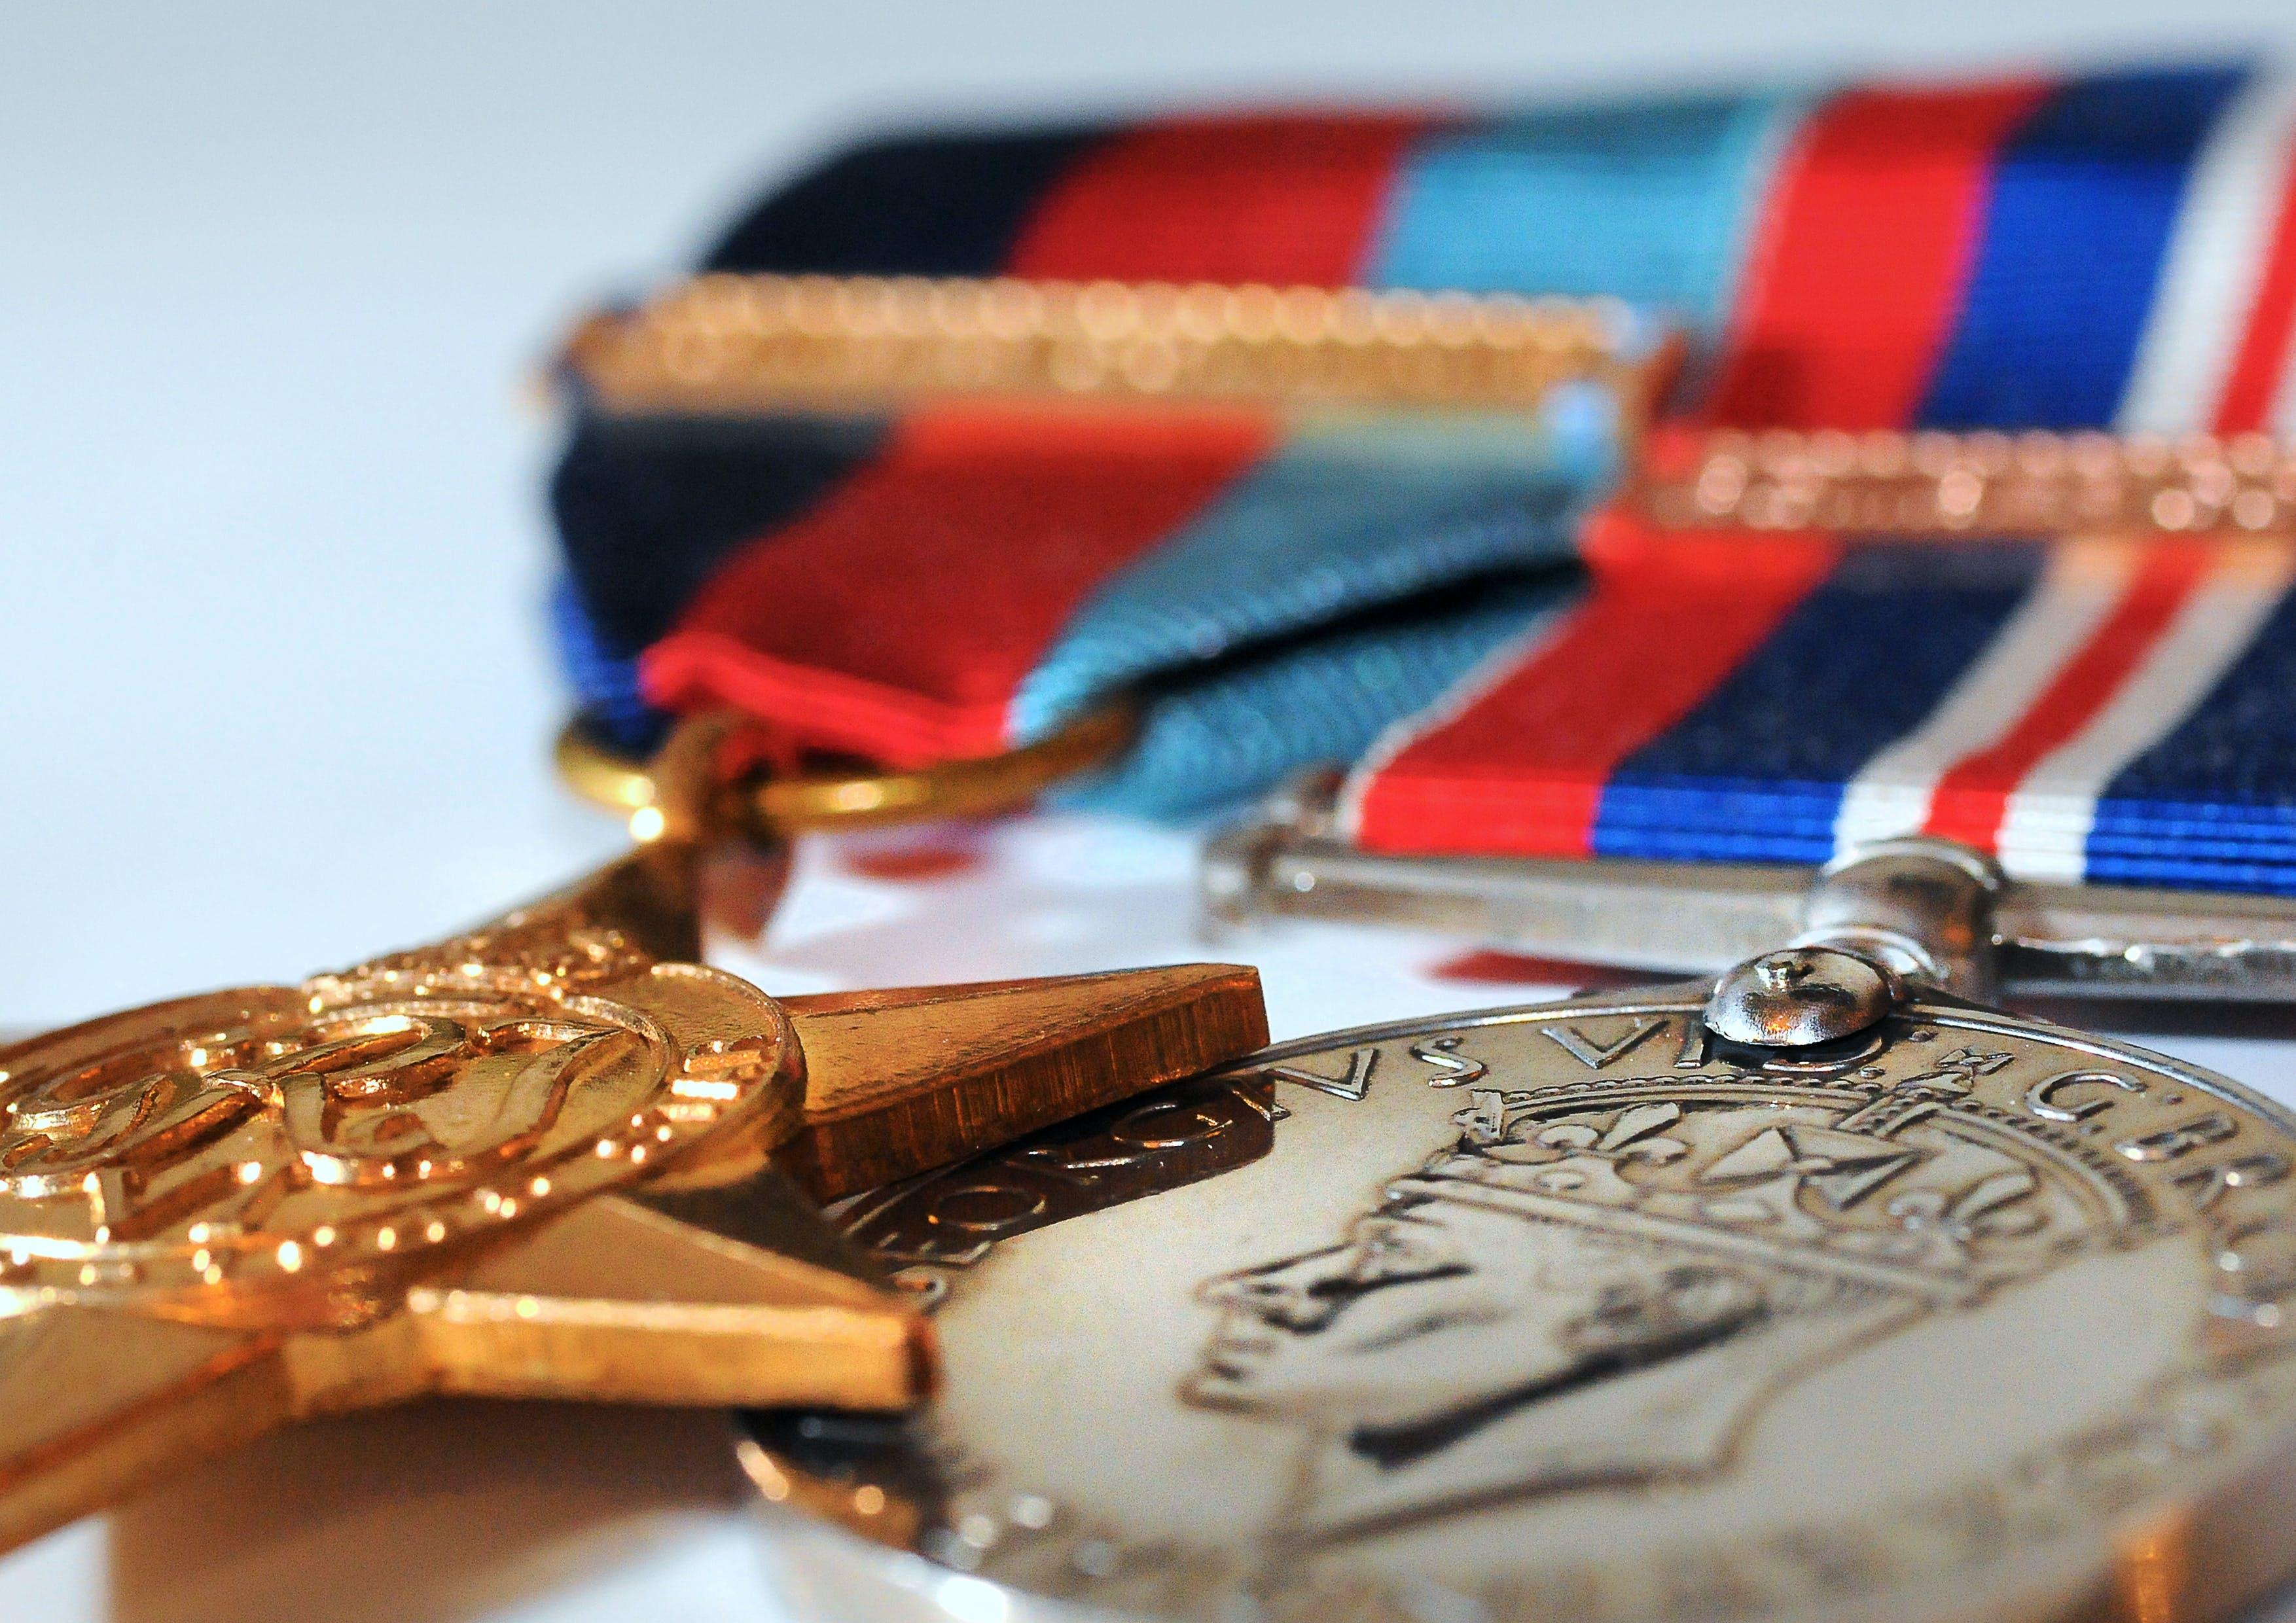 Free stock photo of WWII Medals